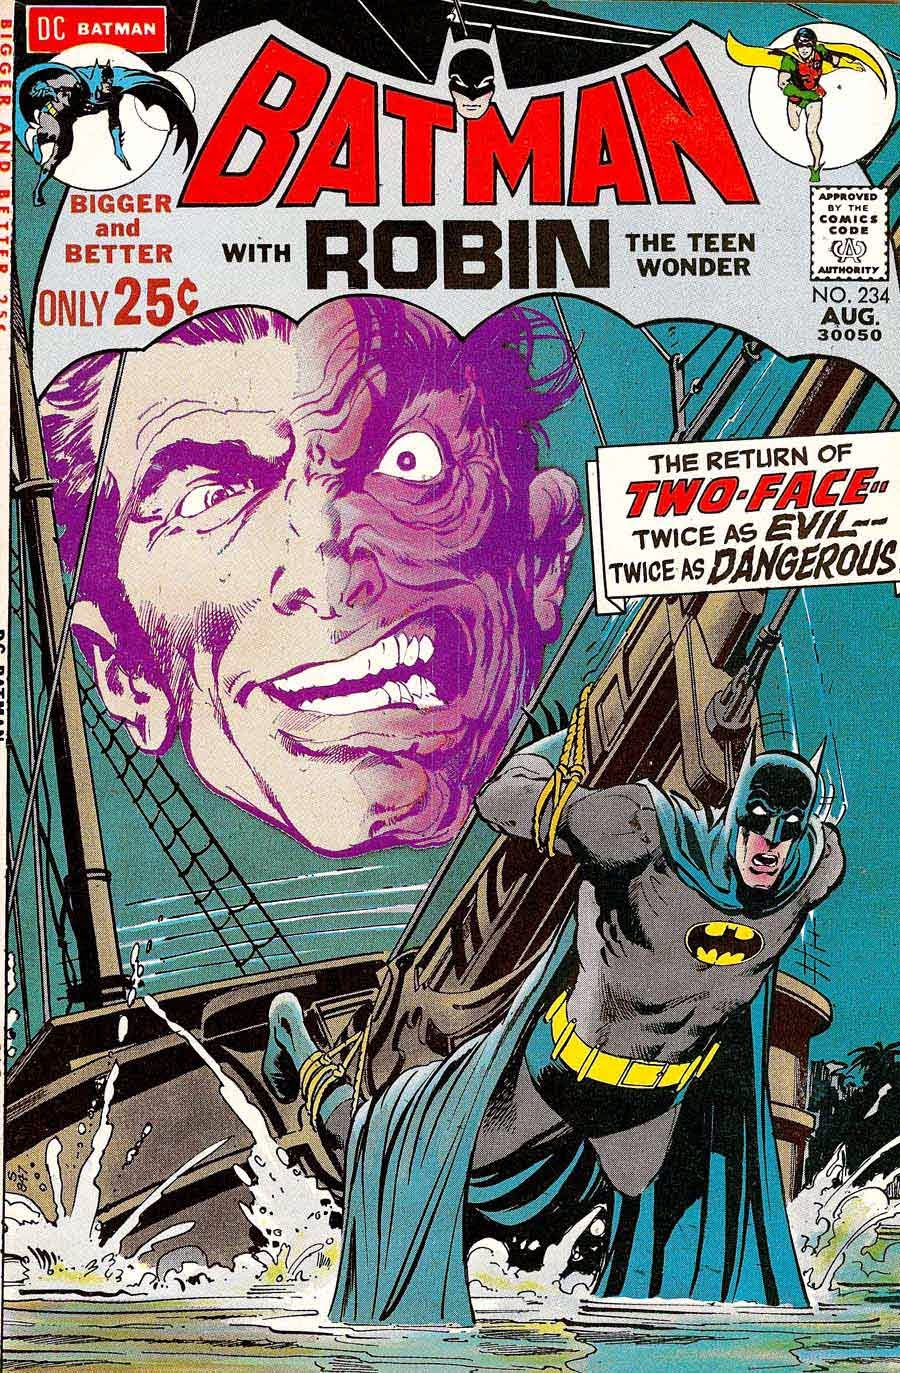 http://www.totalcomicmayhem.com/2013/05/batman-bronze-age-comics-key-issues-list.html